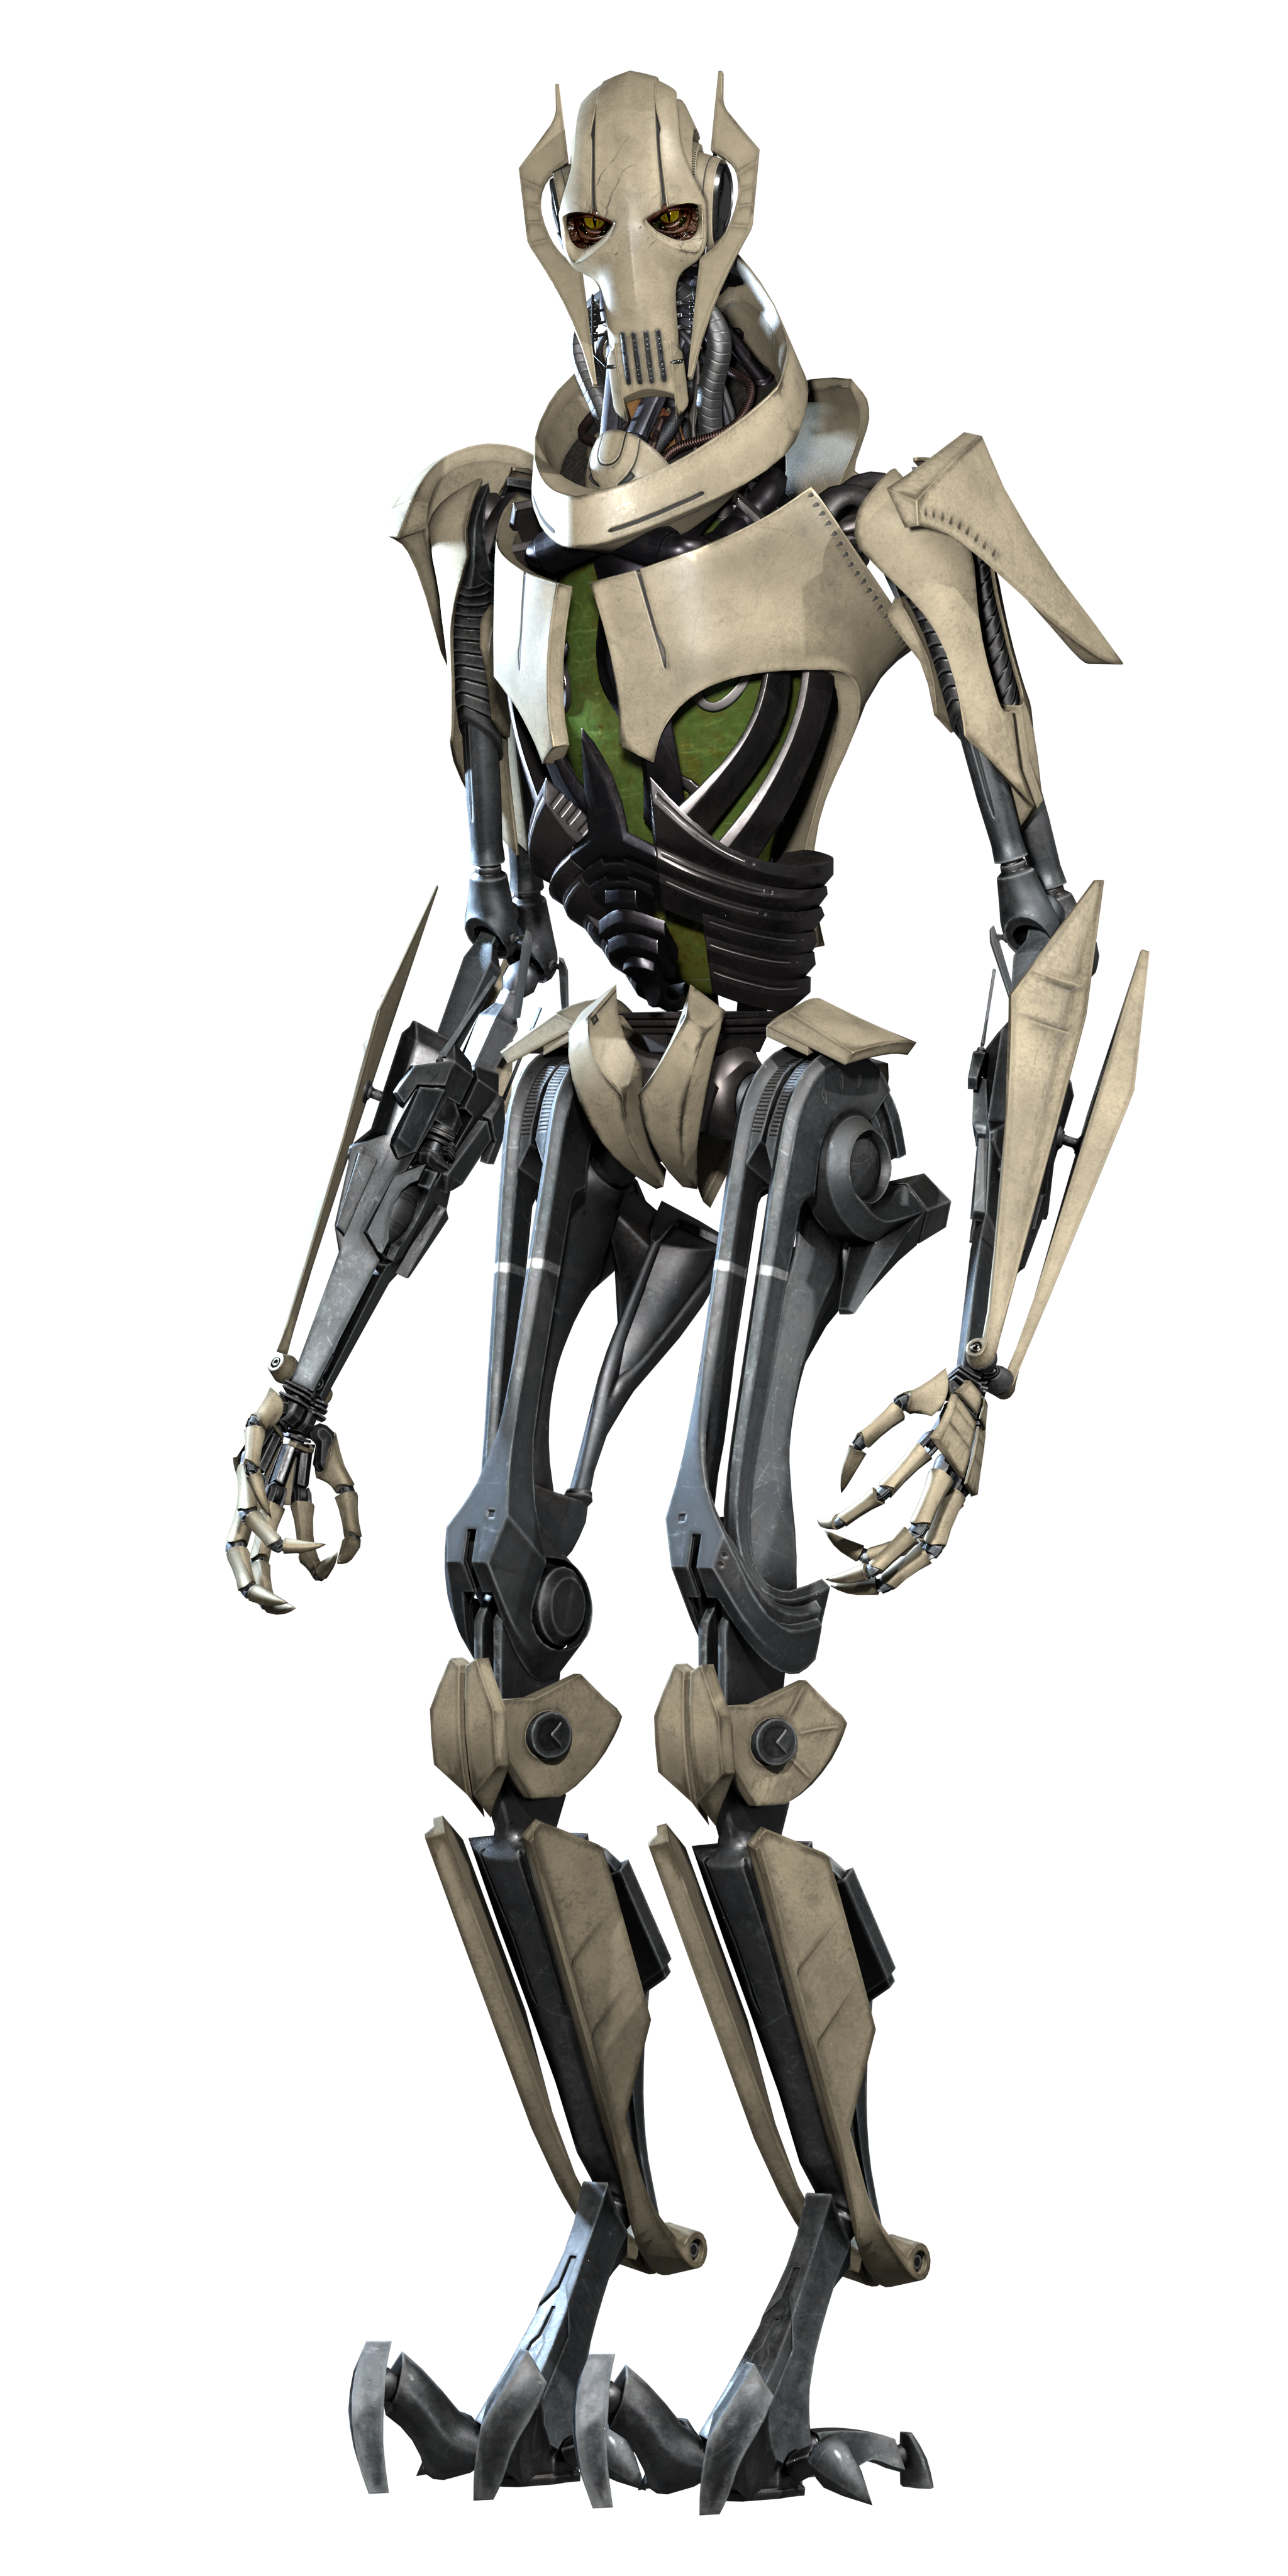 Screen Accurate General Grievous At Star Wars Battlefront Ii 2017 Nexus Mods And Community Star Wars Villains Star Wars Images Star Wars Pictures